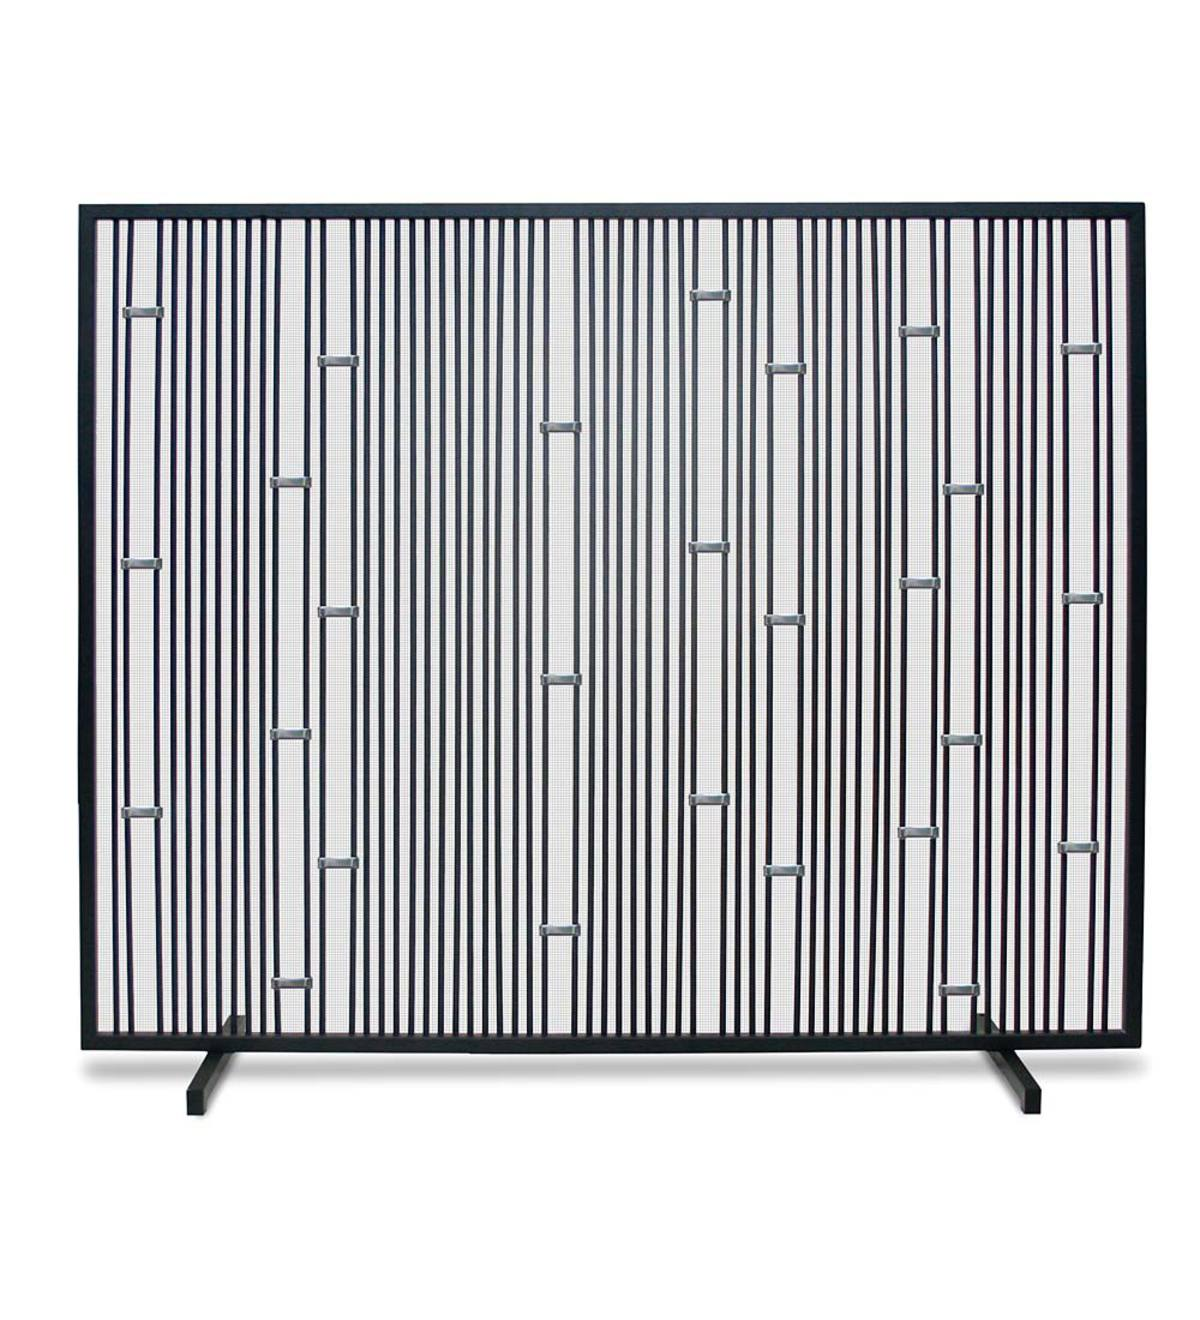 Arden Single Panel Mesh Fireplace Screen - Stainless Steel